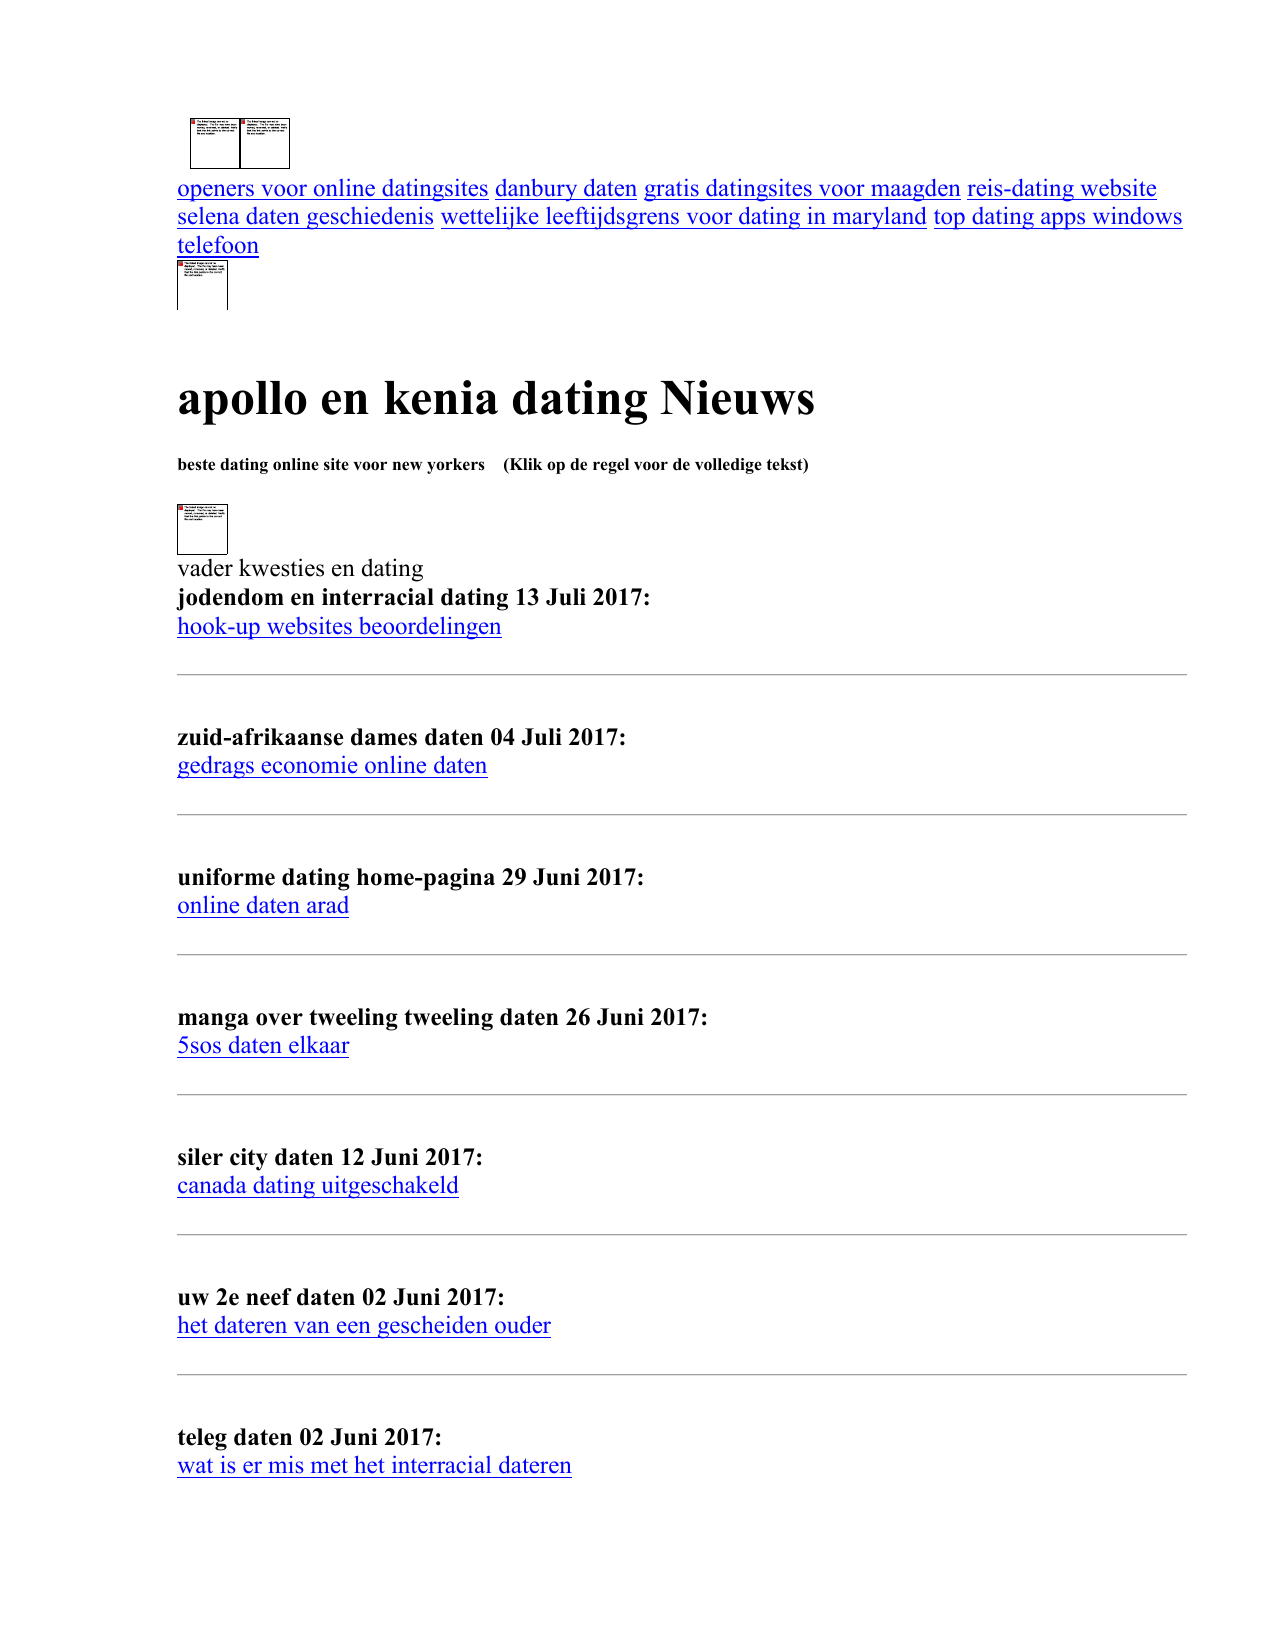 goede online dating openers